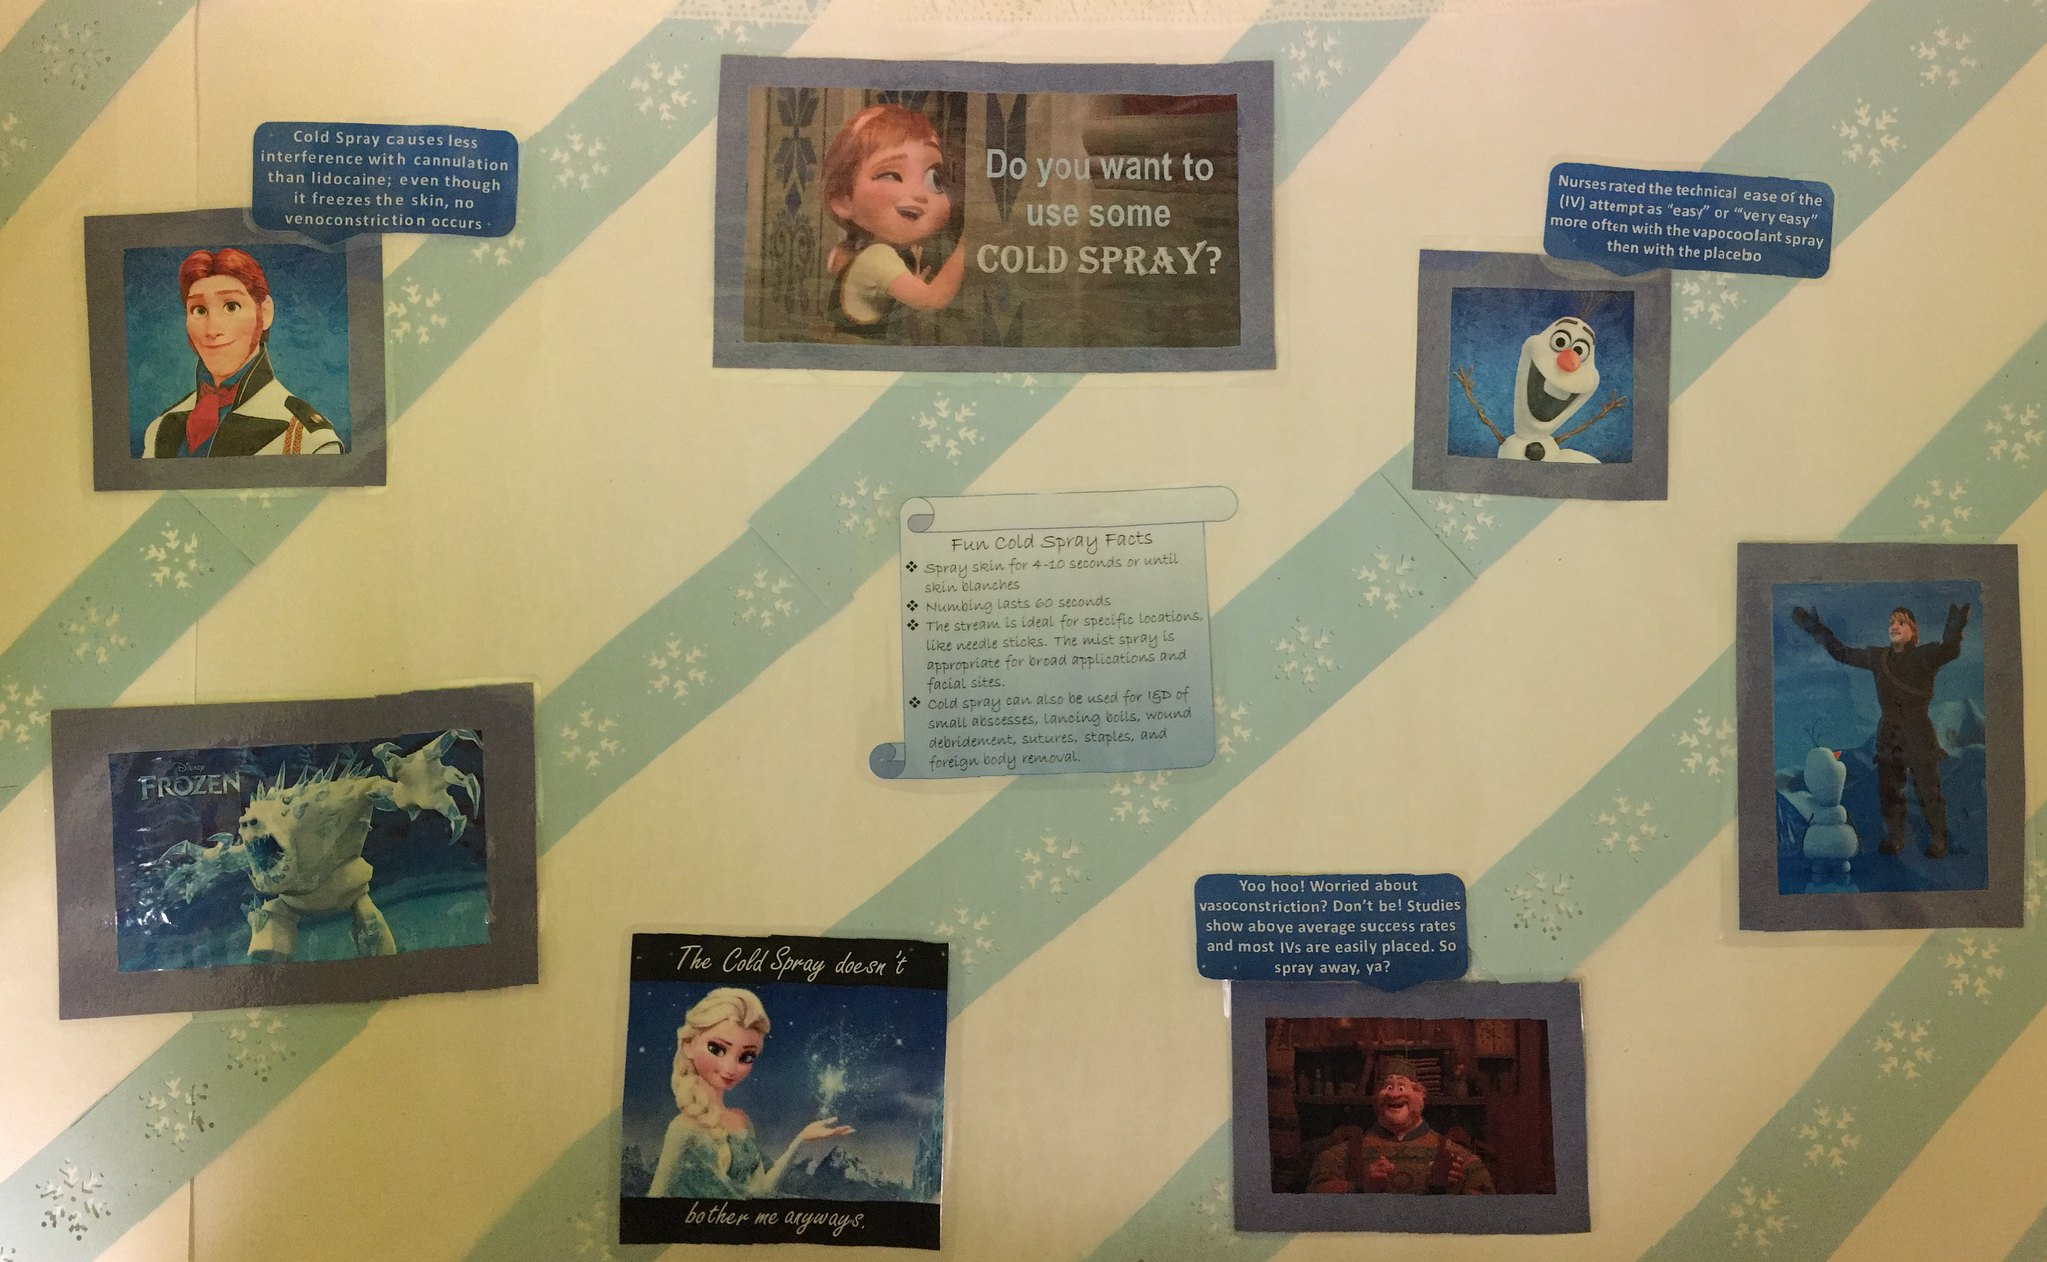 Frozen Spray Bulletin Board